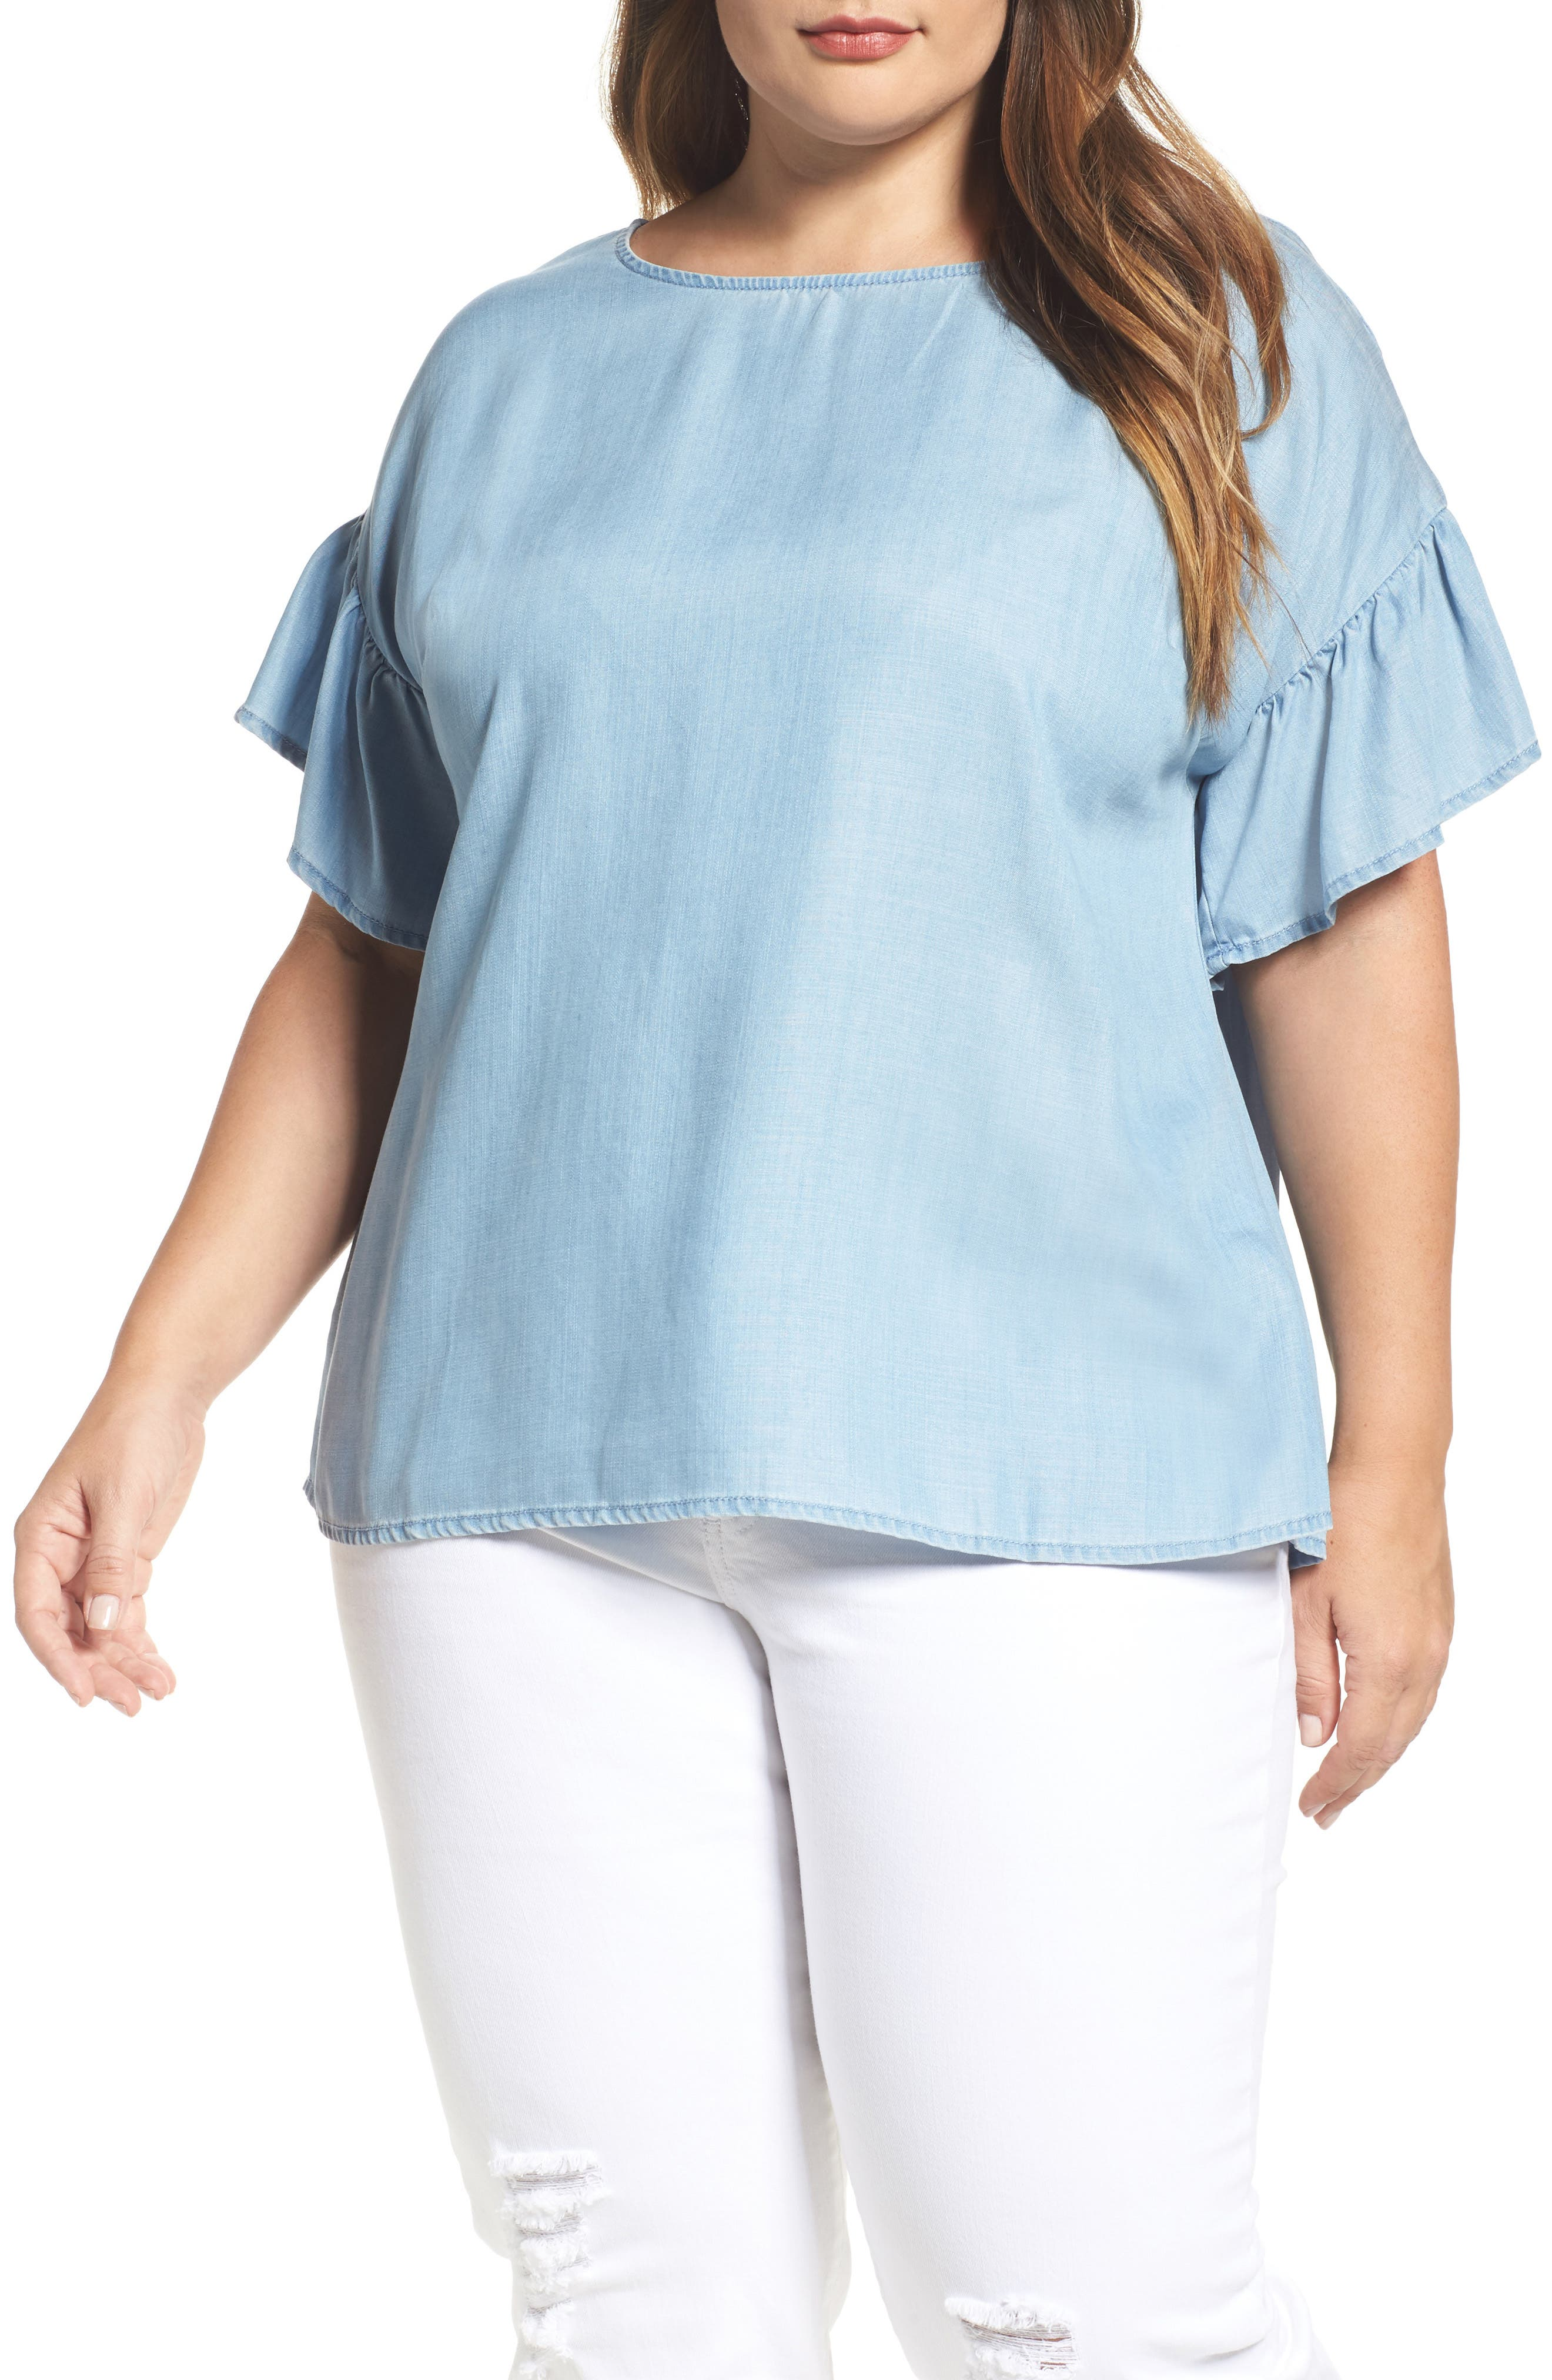 Main Image - Two by Vince Camuto Ruffle Sleeve Chambray Top (Plus Size)